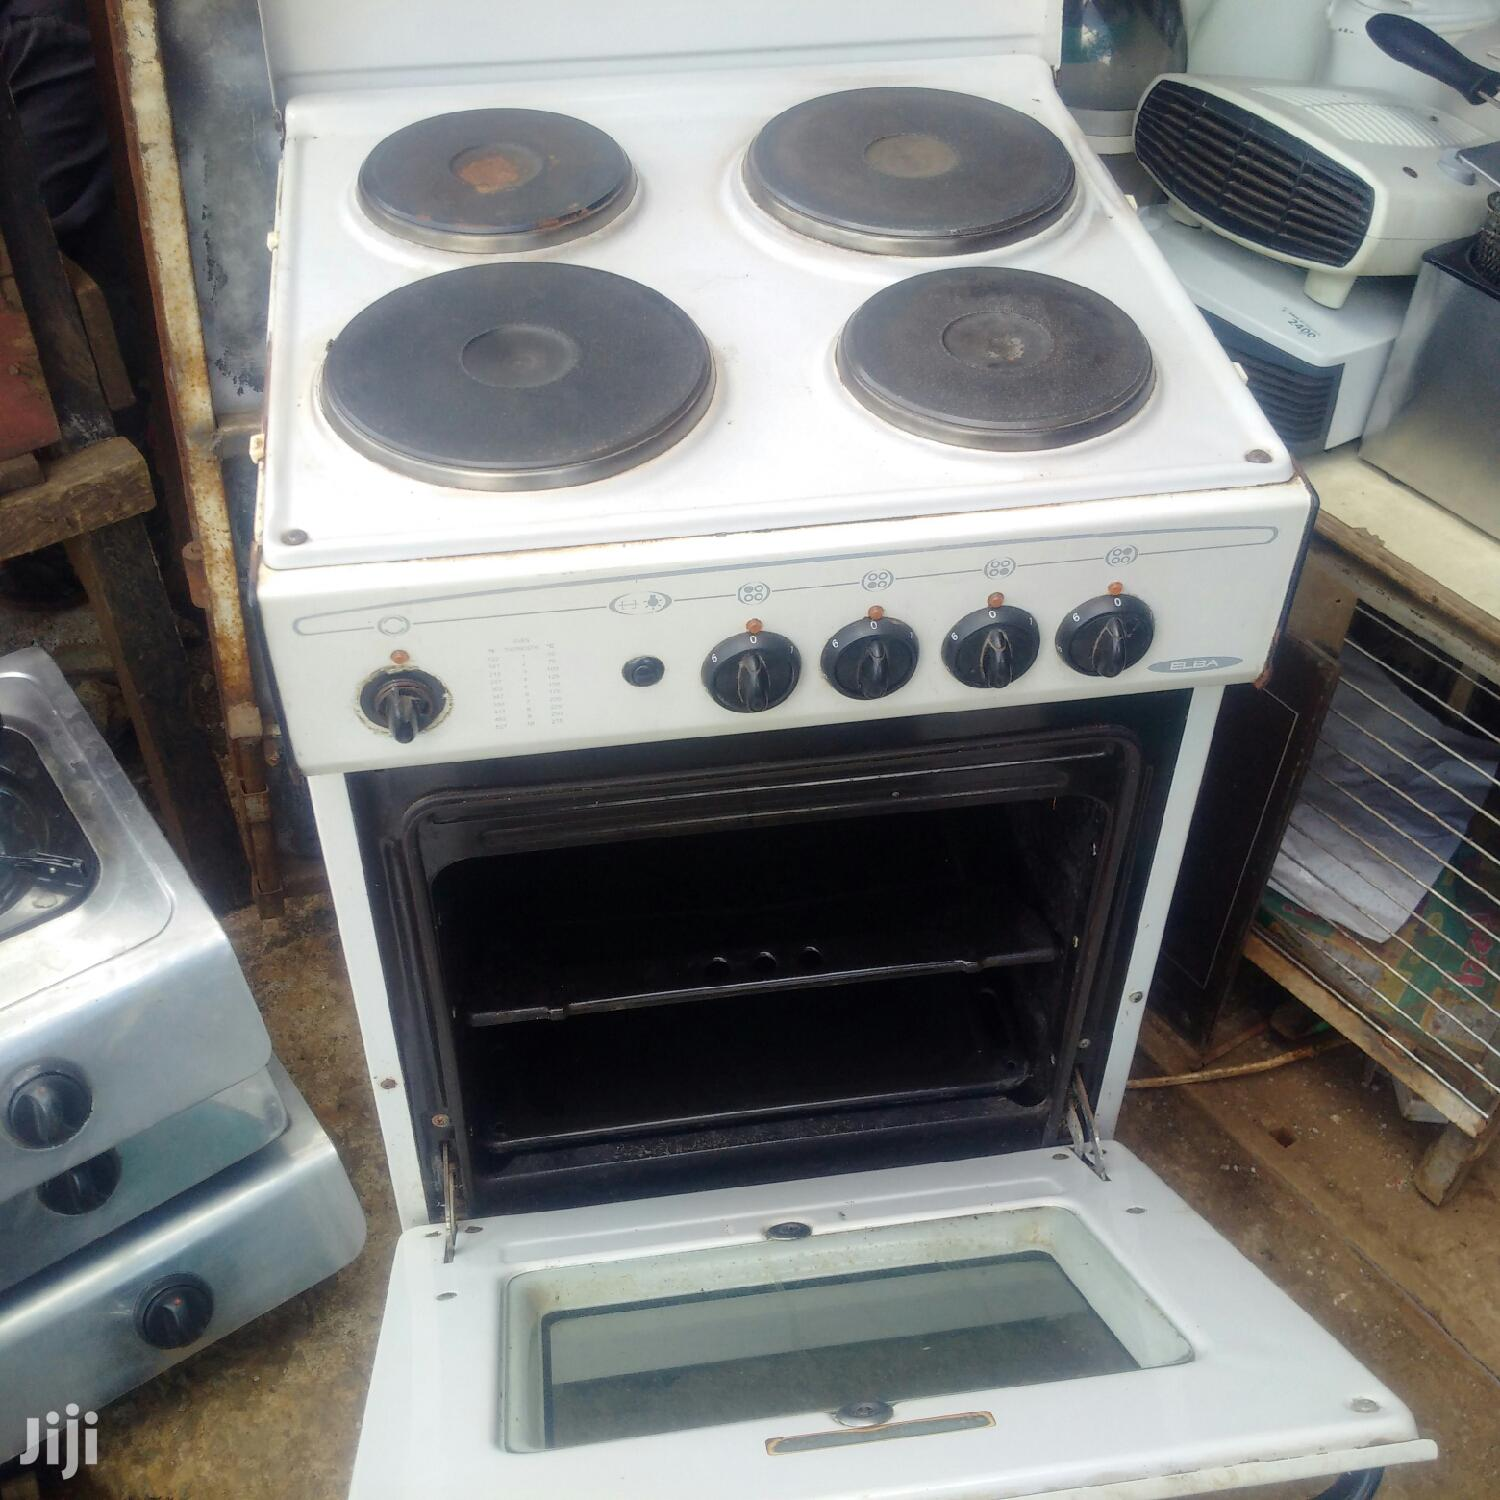 Elba EB-121 4 Plate Electric Cooker Oven | Kitchen Appliances for sale in Nairobi Central, Nairobi, Kenya